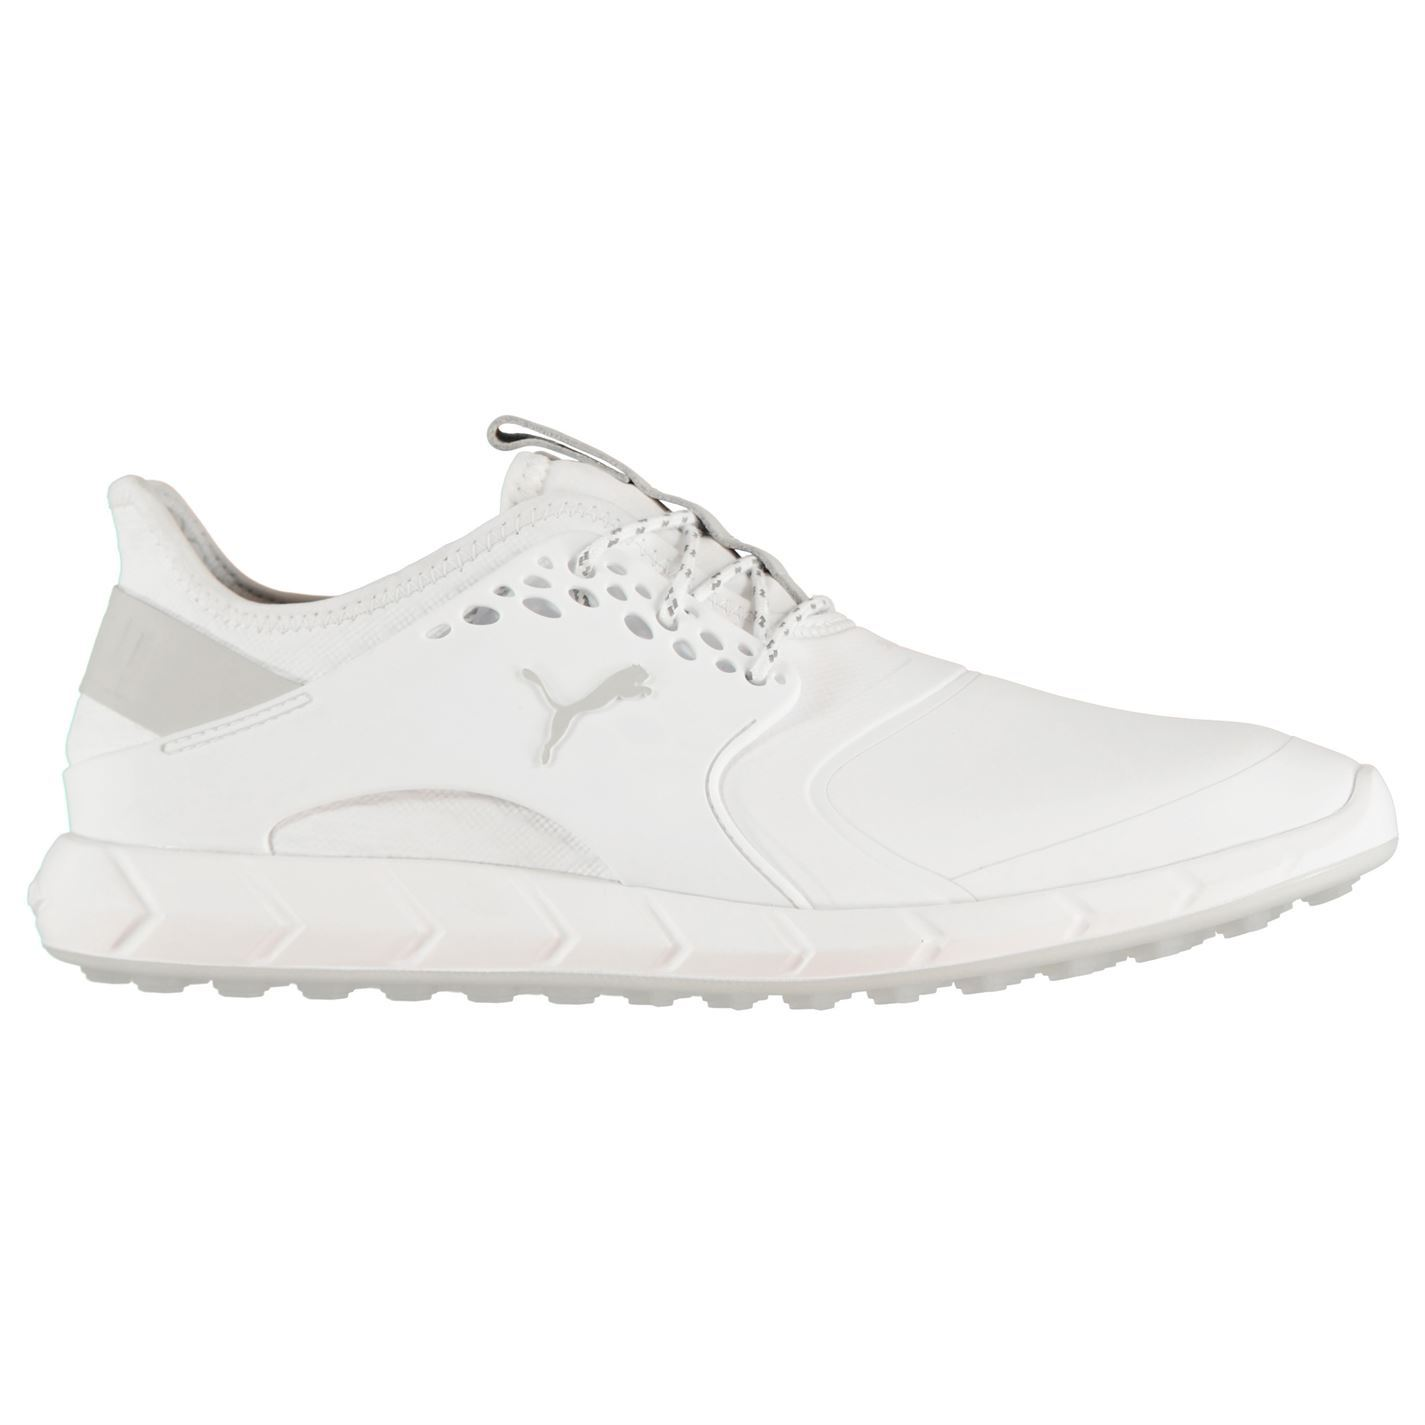 best sneakers f1a77 7c4aa ... Puma Mens Pwrsport Spikeless Golf Shoes Shoes Shoes ba3119